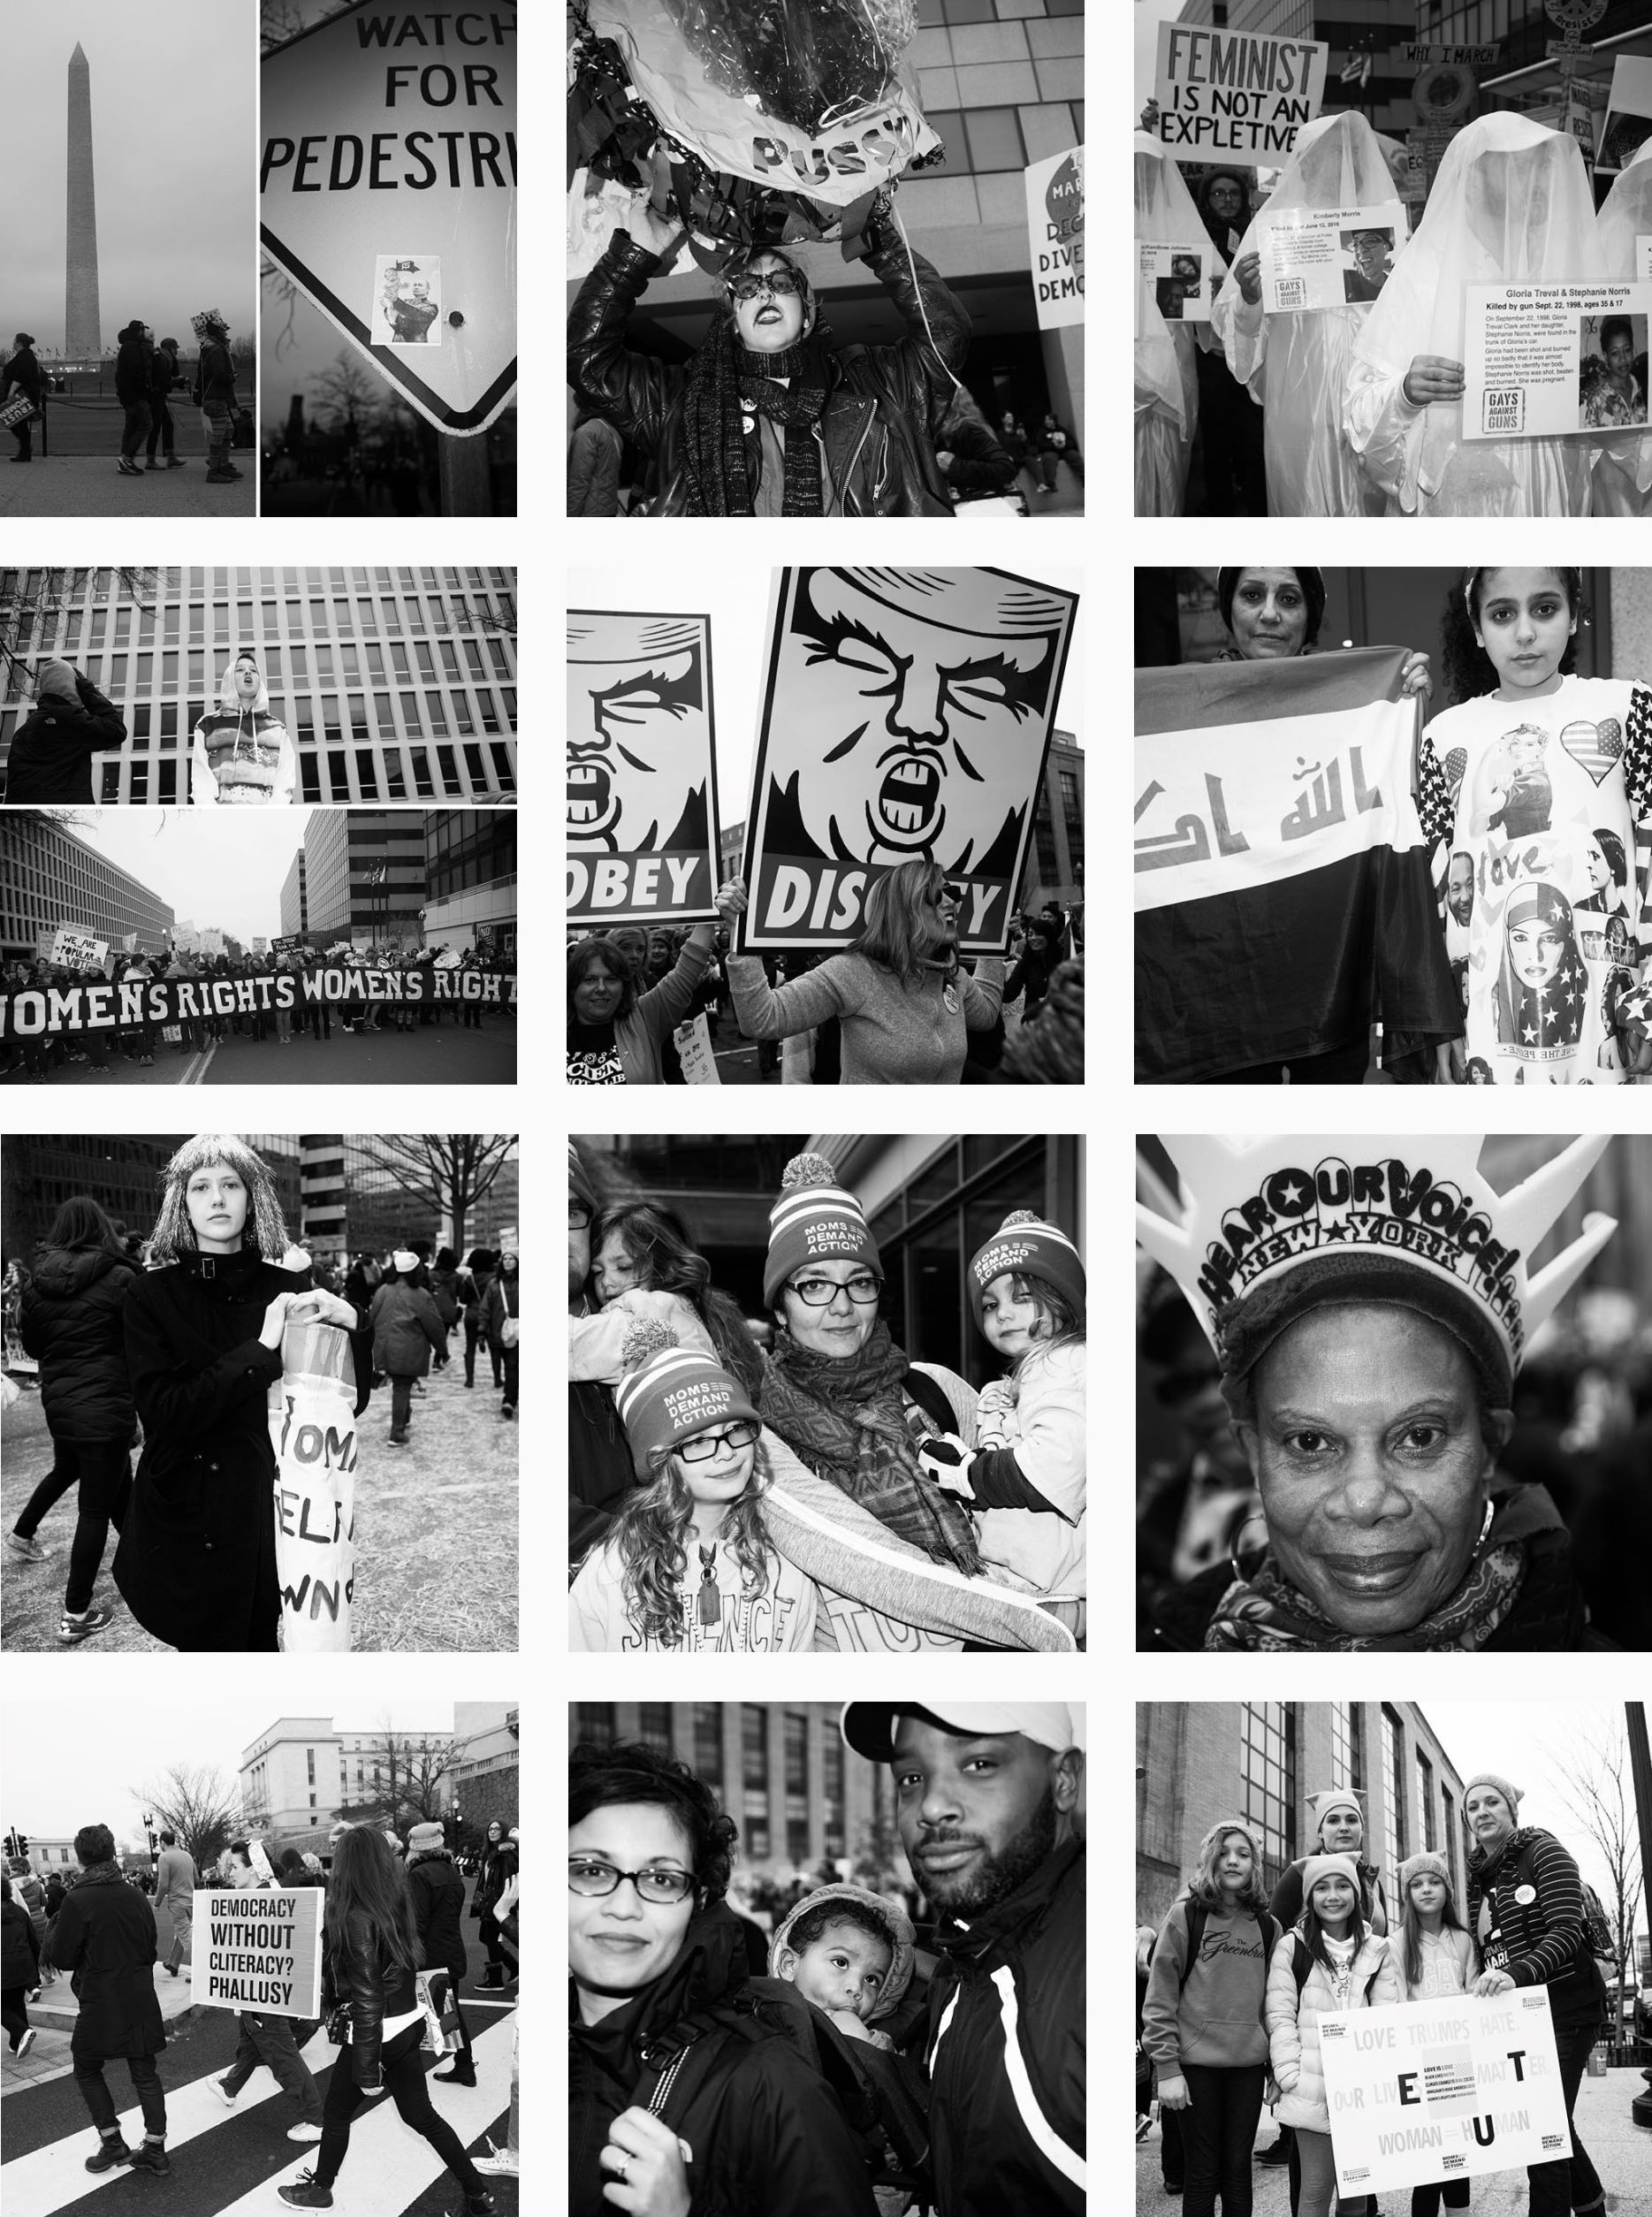 """"""" #WomensMarchOnWashington Live Coverage .""""   Photos & Reporting:   Lili Holzer-Glier   Role:  Assignment, Instagram and website coordinator, sequence, text."""